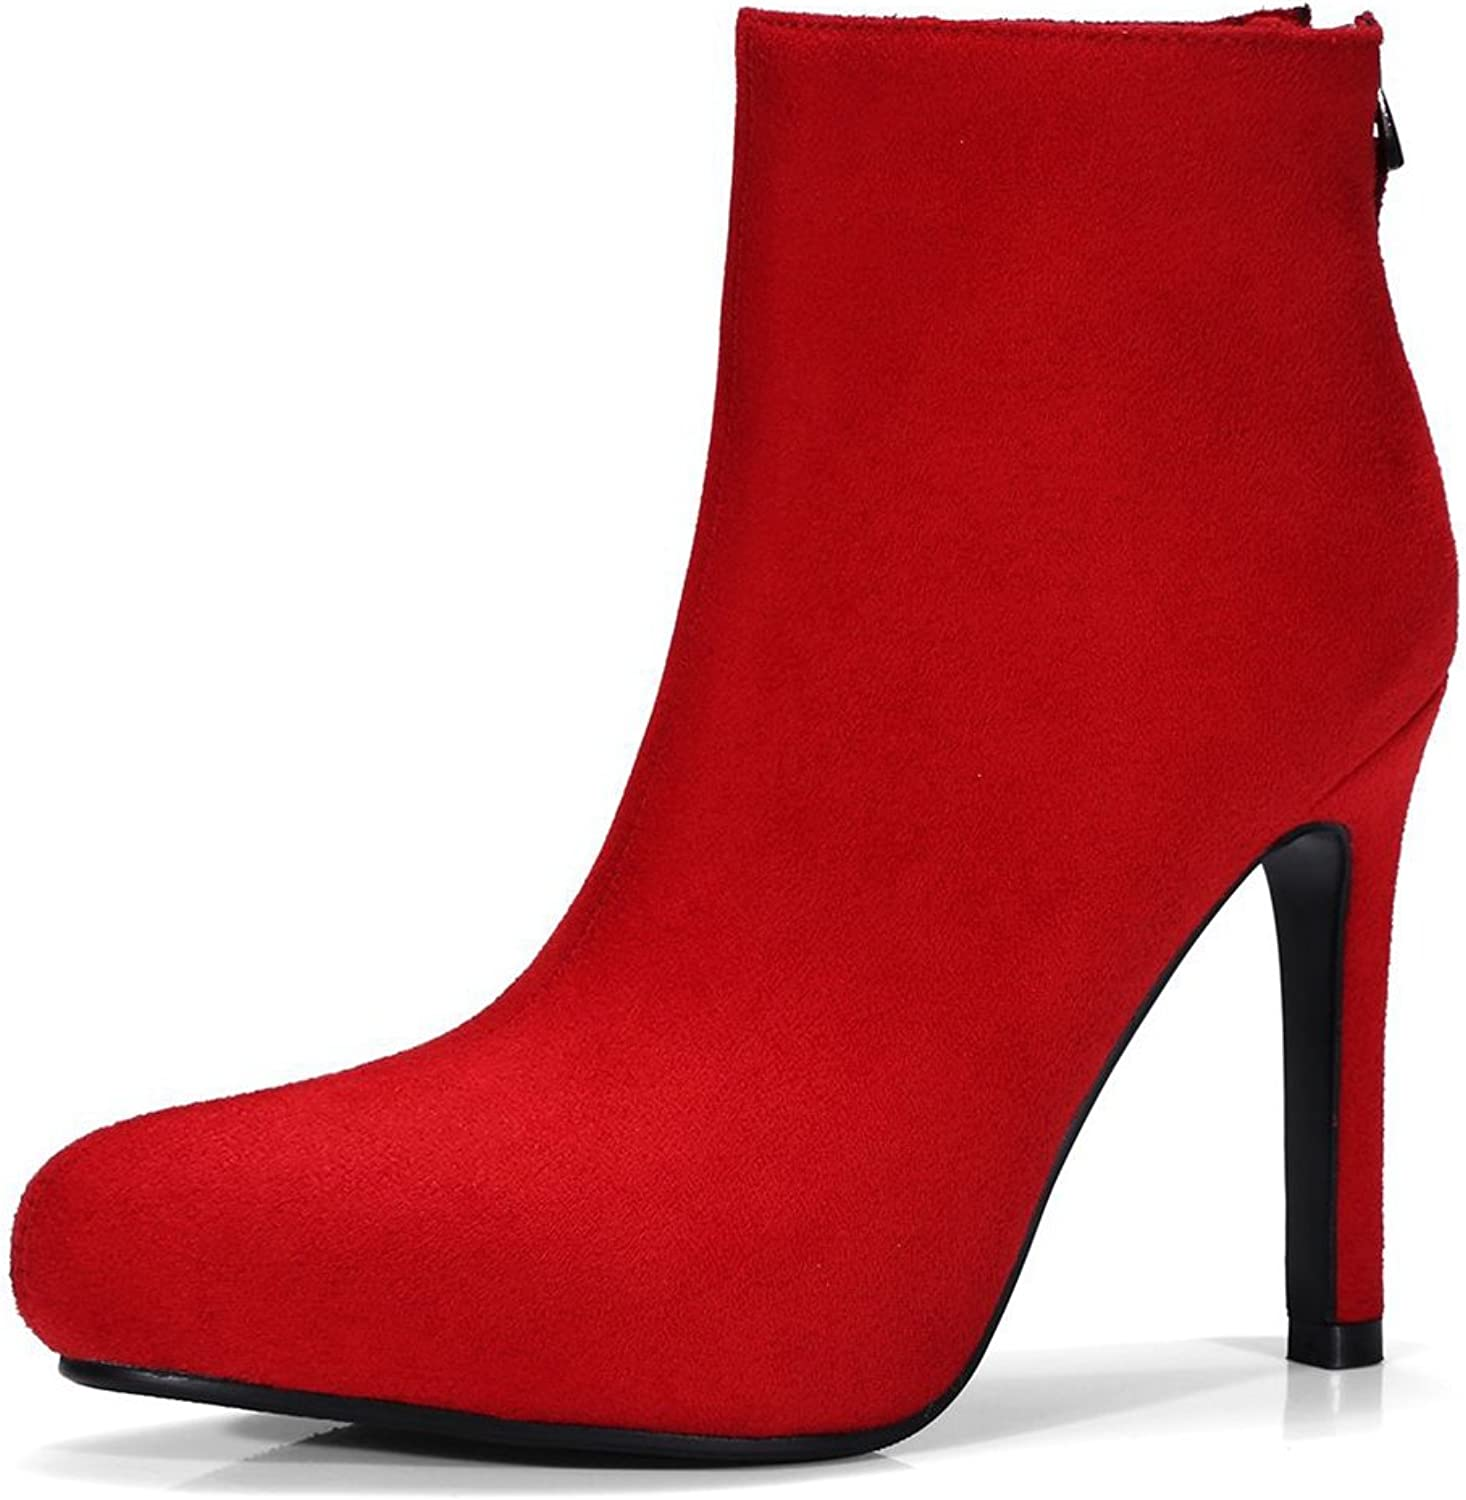 SaraIris Women's Round Toe Thin High Heels Zipper Elegant Frosted Flock Ankle Boots